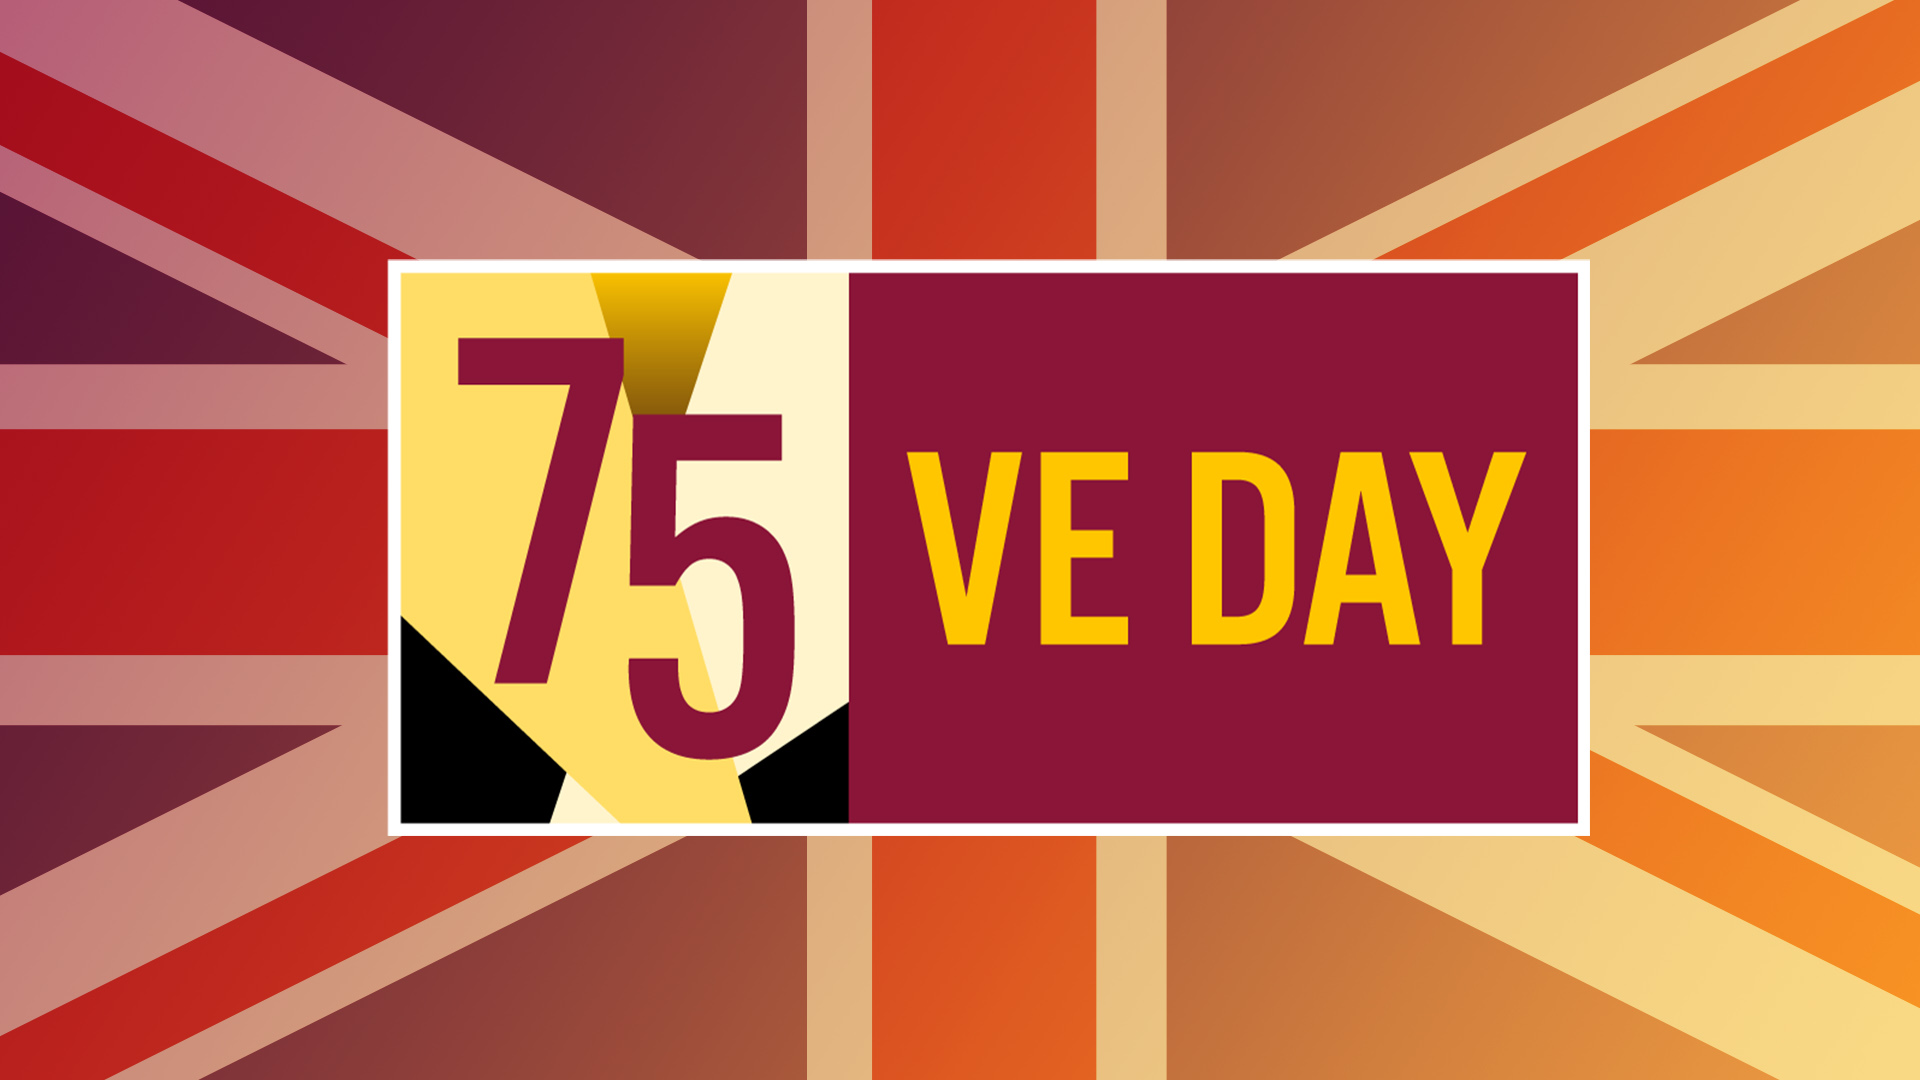 Join Culture Liverpool in celebrating VE Day at home!